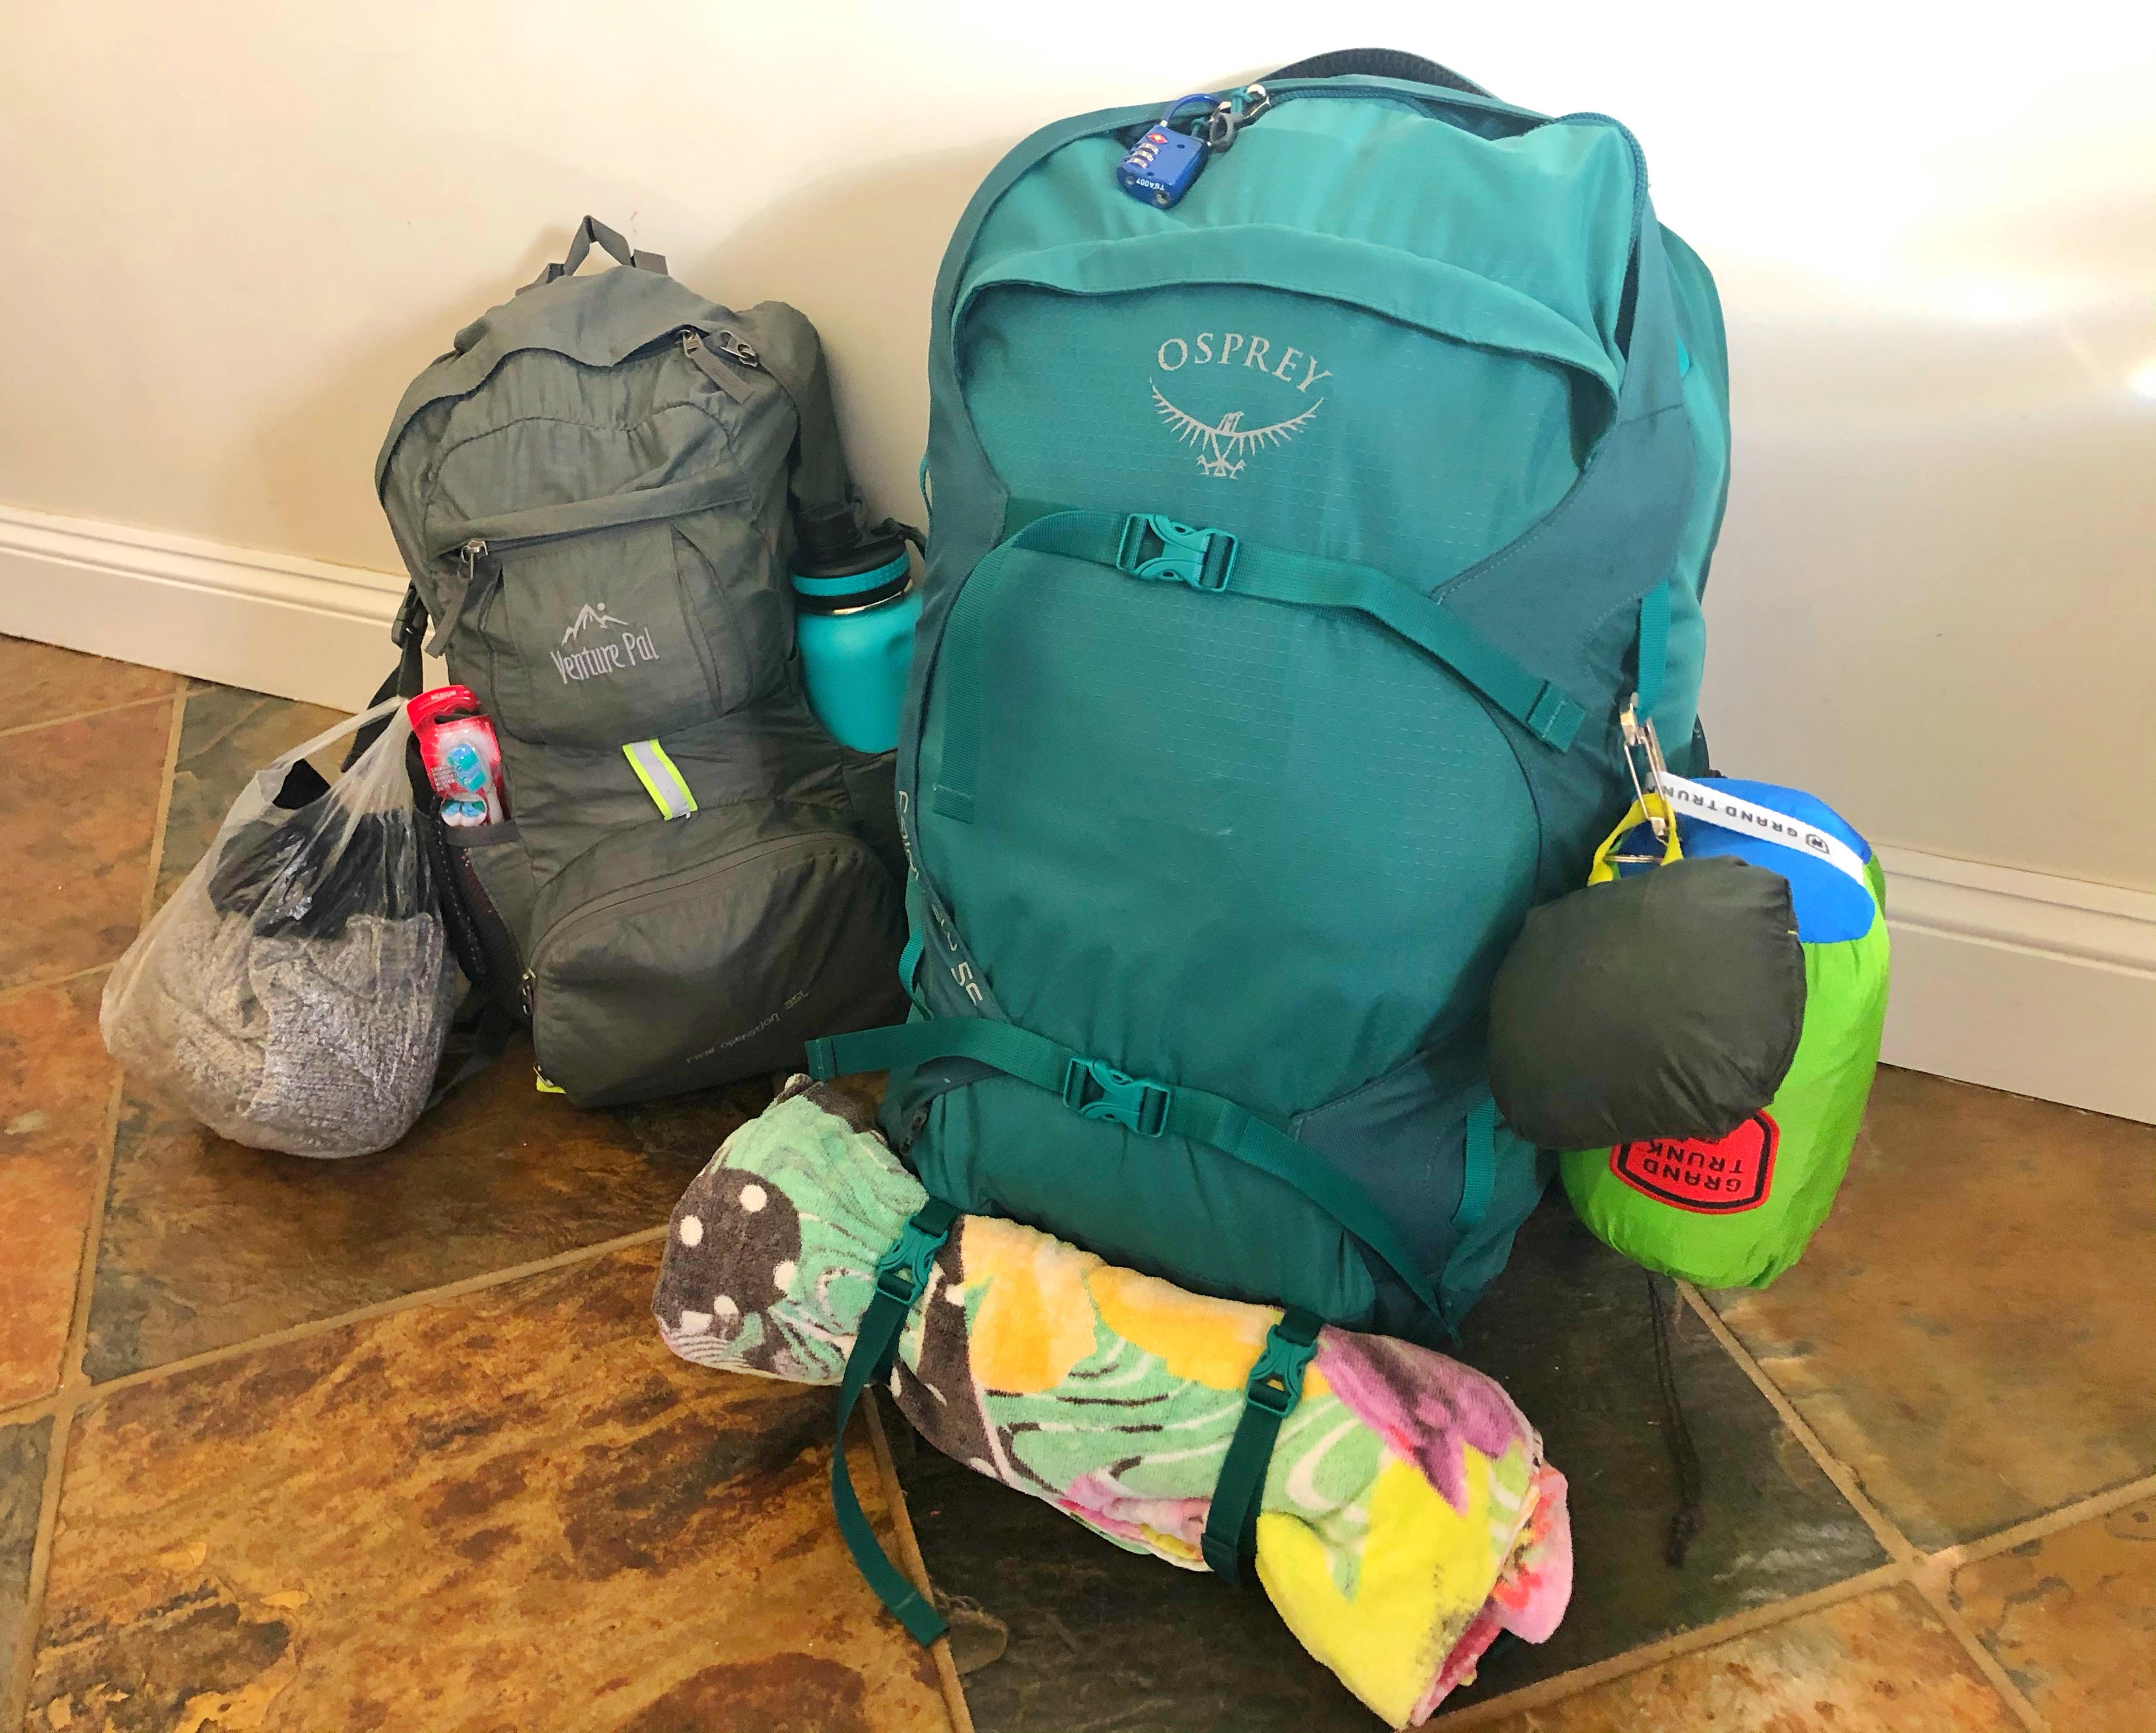 two backpacks sitting on the floor